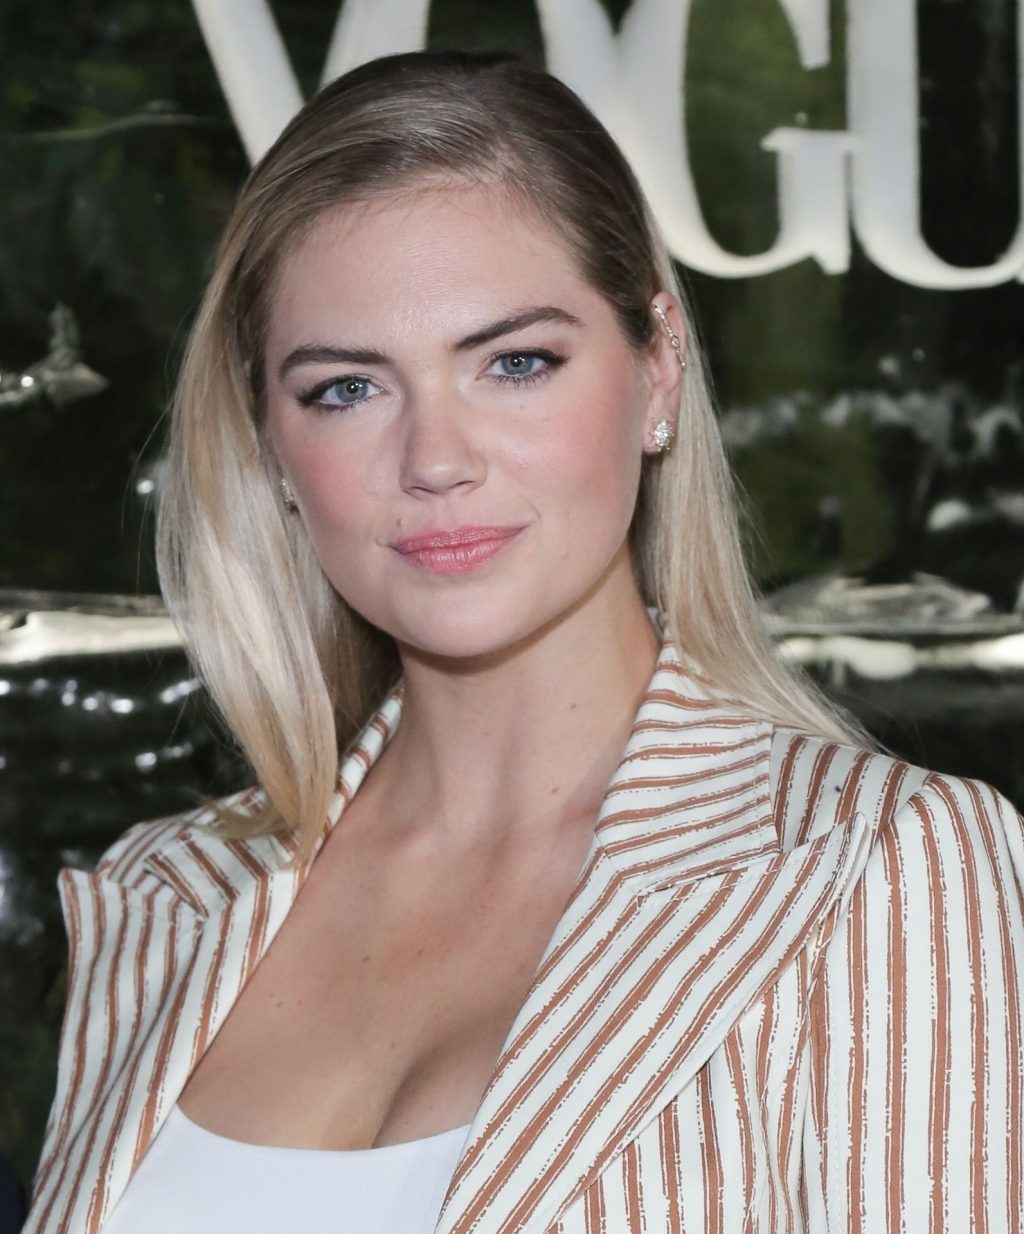 Kate Upton Sexy The Fappening Blog 17 1024x1234 - Kate Upton Attends Canada Goose And Vogue Cocktails & Conversations (104 Photos)